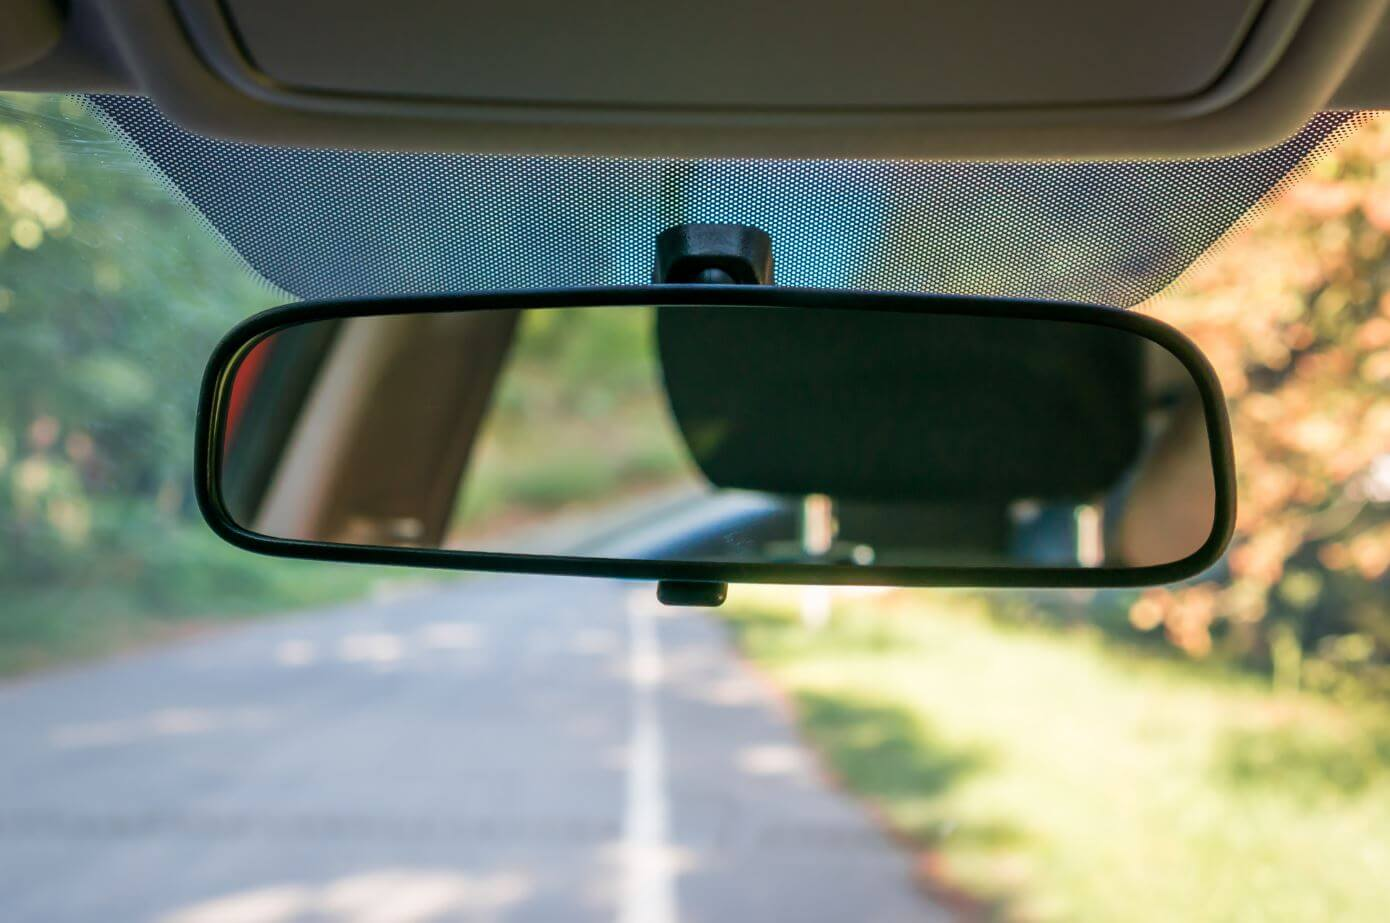 Rearview mirror small